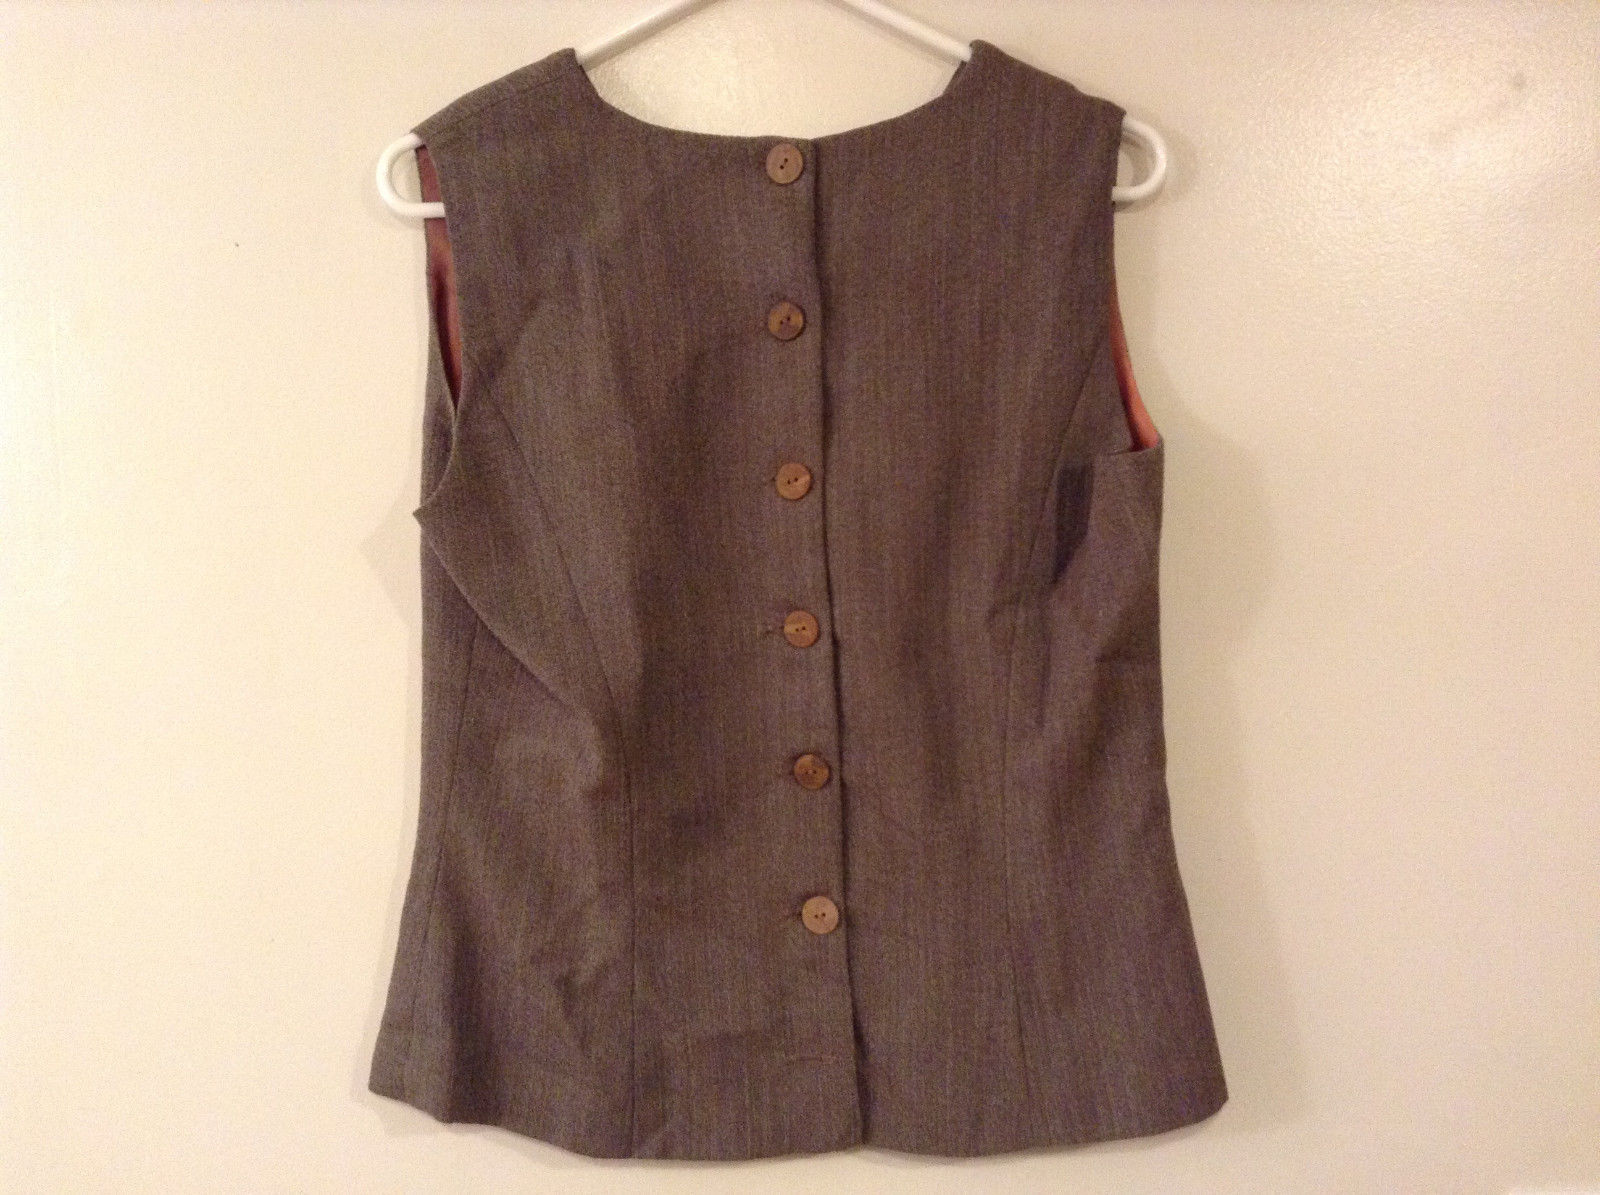 Brand Unknow Ladies Size M Sleeveless Vest Ta Brown Tweed-Look Buttons closure